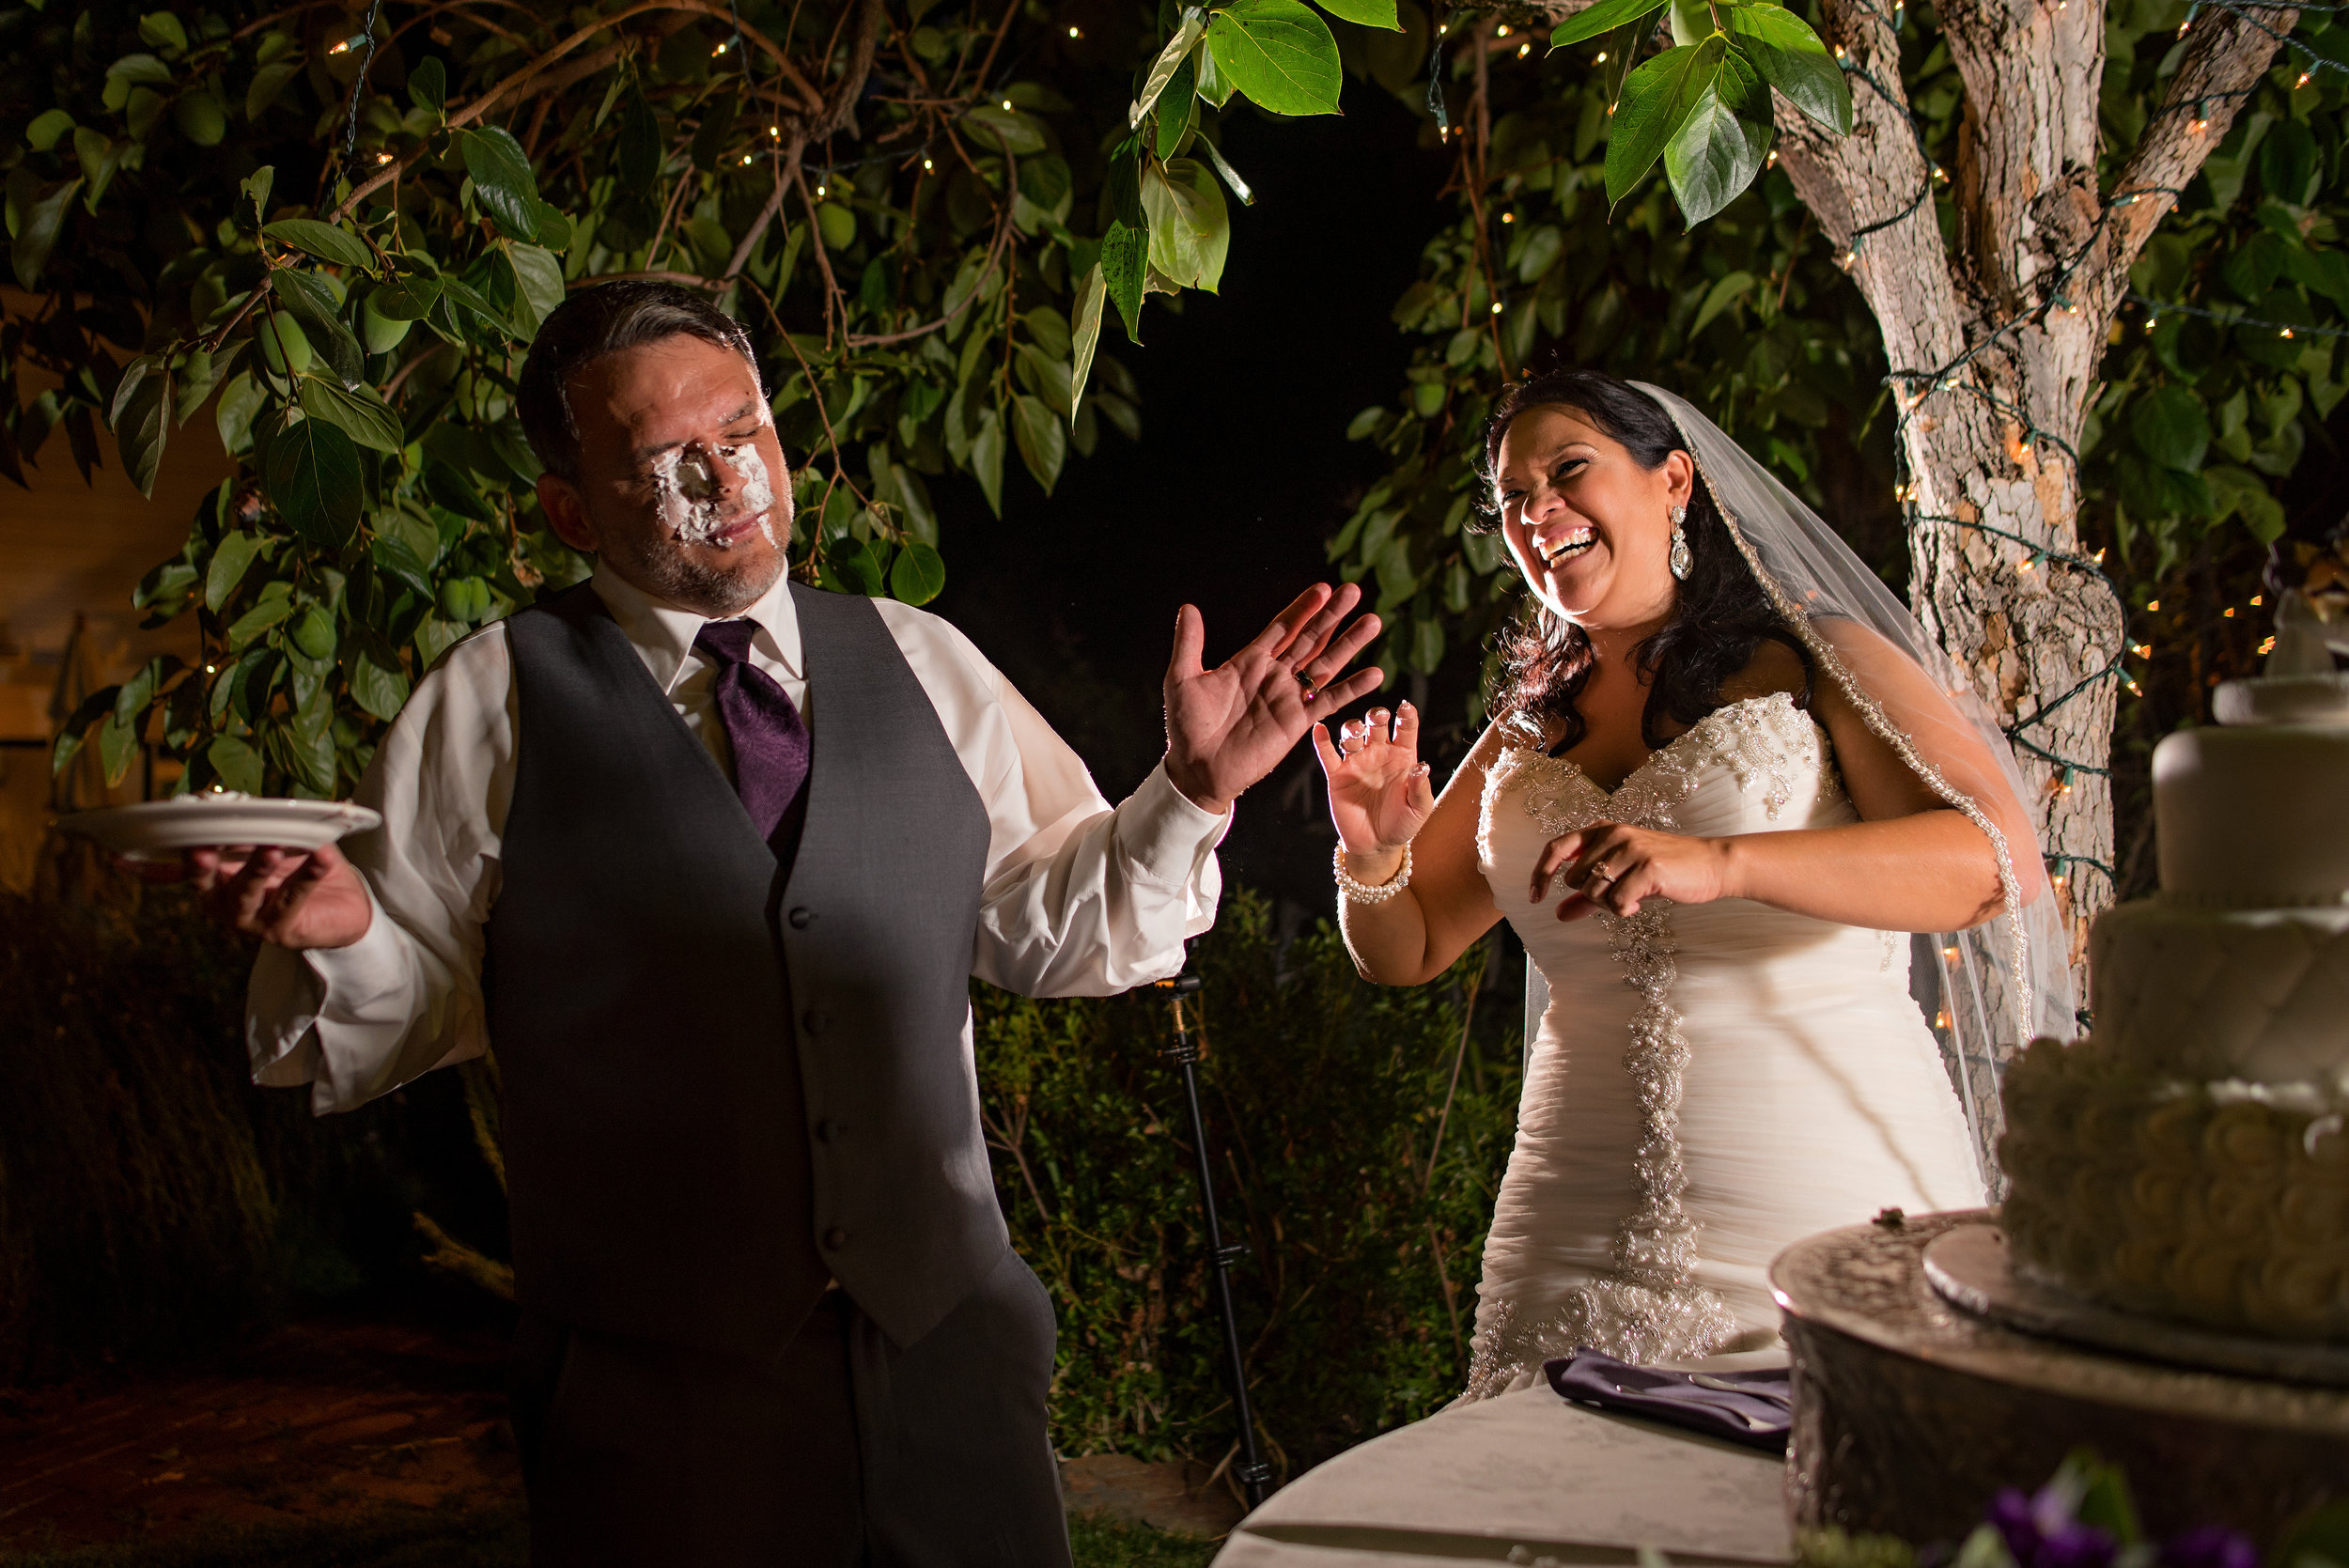 Cake cutting during wedding at Monte Verde Inn in Foresthill California.